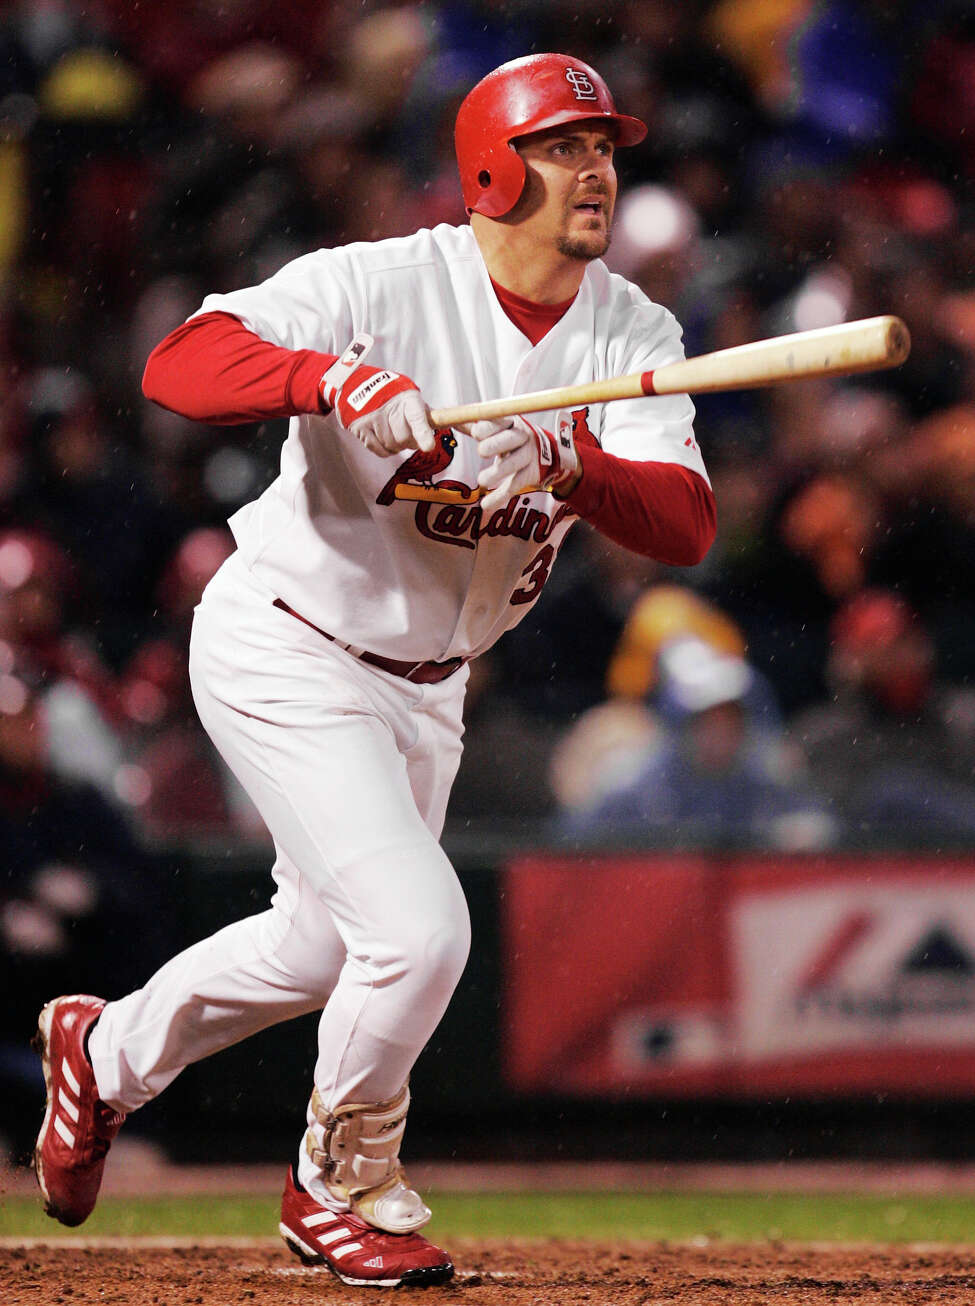 FILE - In this Oct. 14, 2004, file photo, St. Louis Cardinals' Larry Walker watches his two-run home run off Houston Astros pitcher Pete Munro in the fifth inning of Game 2 of the National League Championship Series in St. Louis. Walker is on the 2020 Hall of Fame ballot. On Tuesday, Jan. 21, 2020, the Baseball Writers' Association of America will announce the results of its 2020 Hall of Fame balloting. (AP Photo/Al Behrman, File)